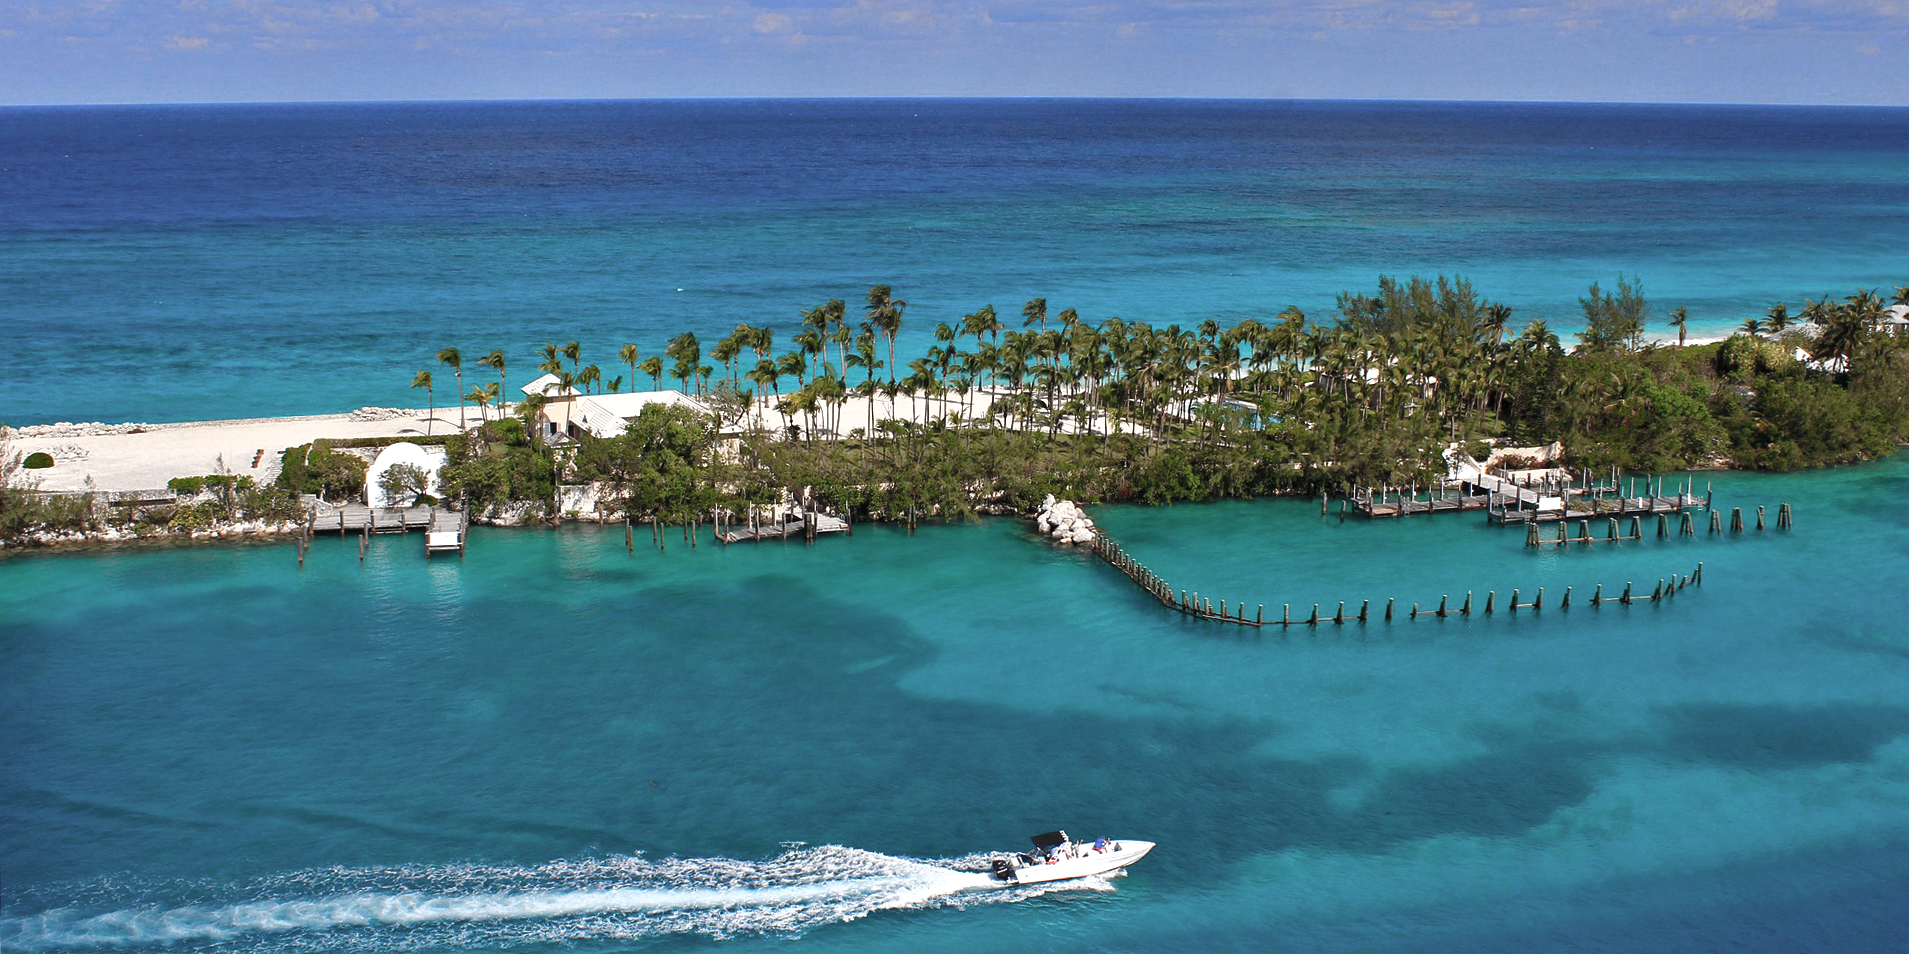 Victoria Point Blue Hole Andros, Bimini, and the Berry Islands, Bahamas and Turk & Caicos cruising